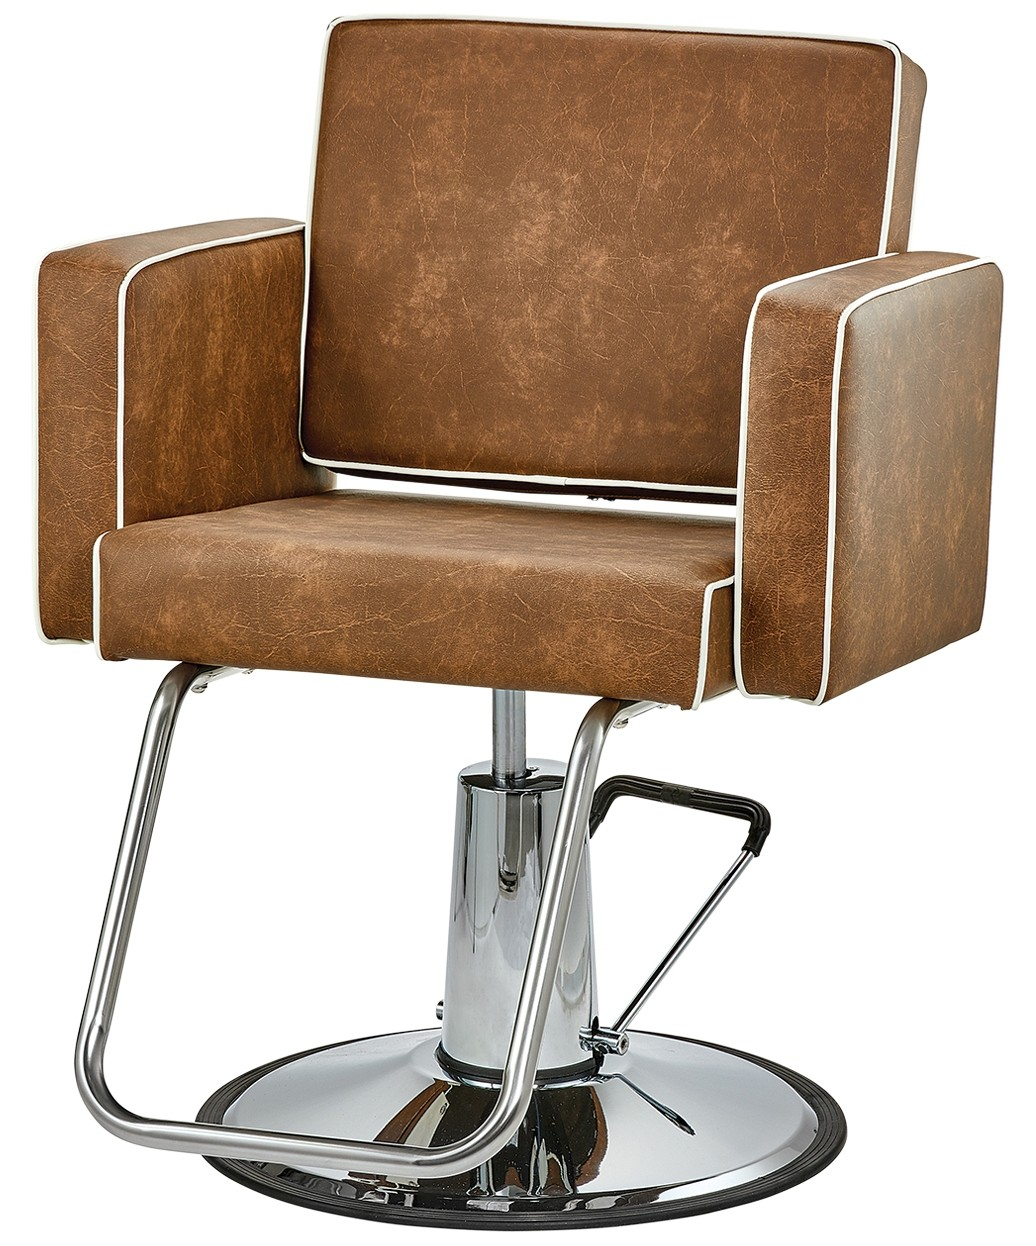 Pibbs 3406 Cosmo Styling Chair w/ Piping